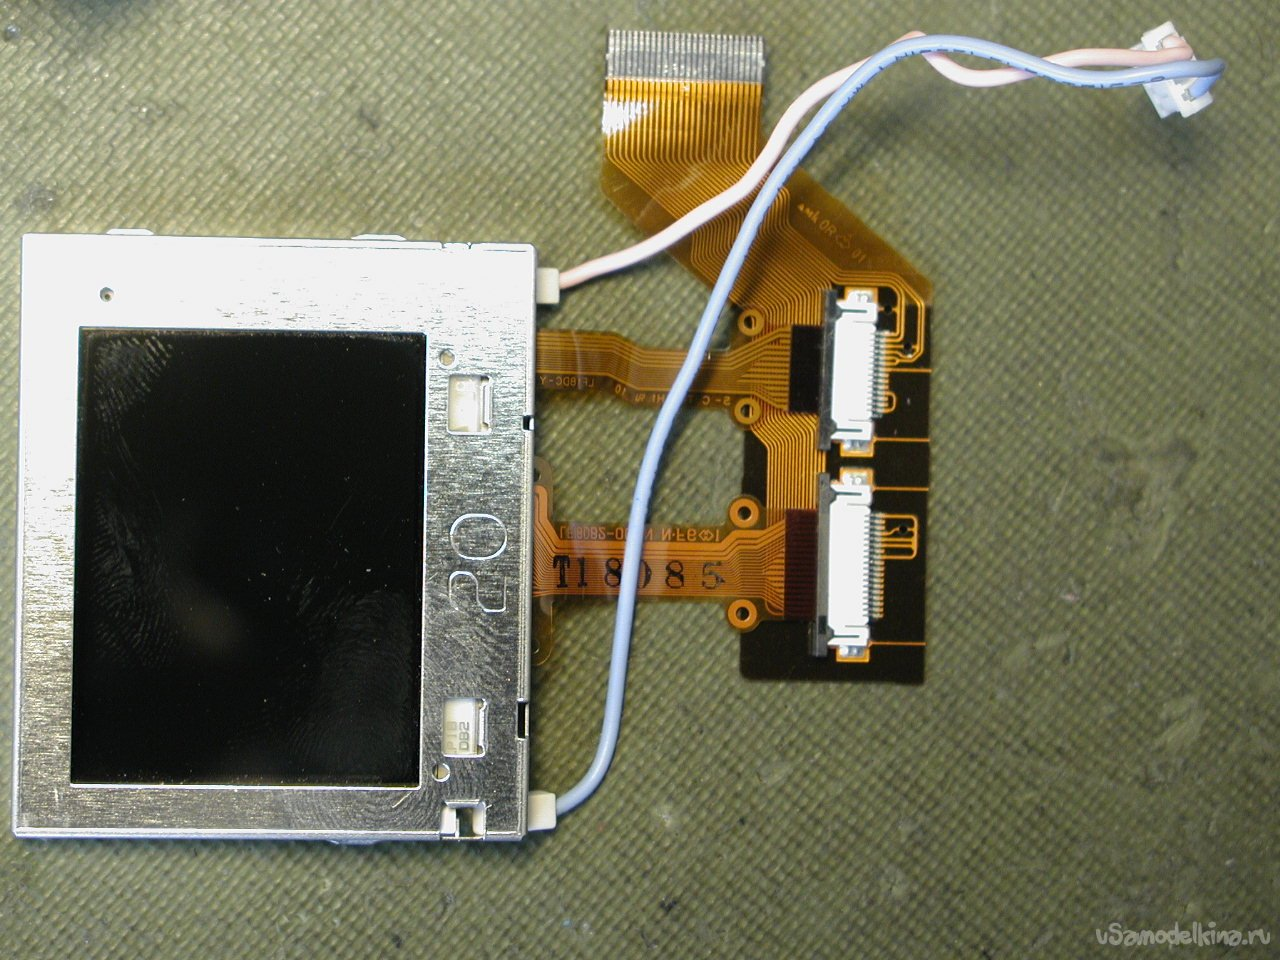 Incomplete disassembly of the Fujifilm FinePix 2600 camera